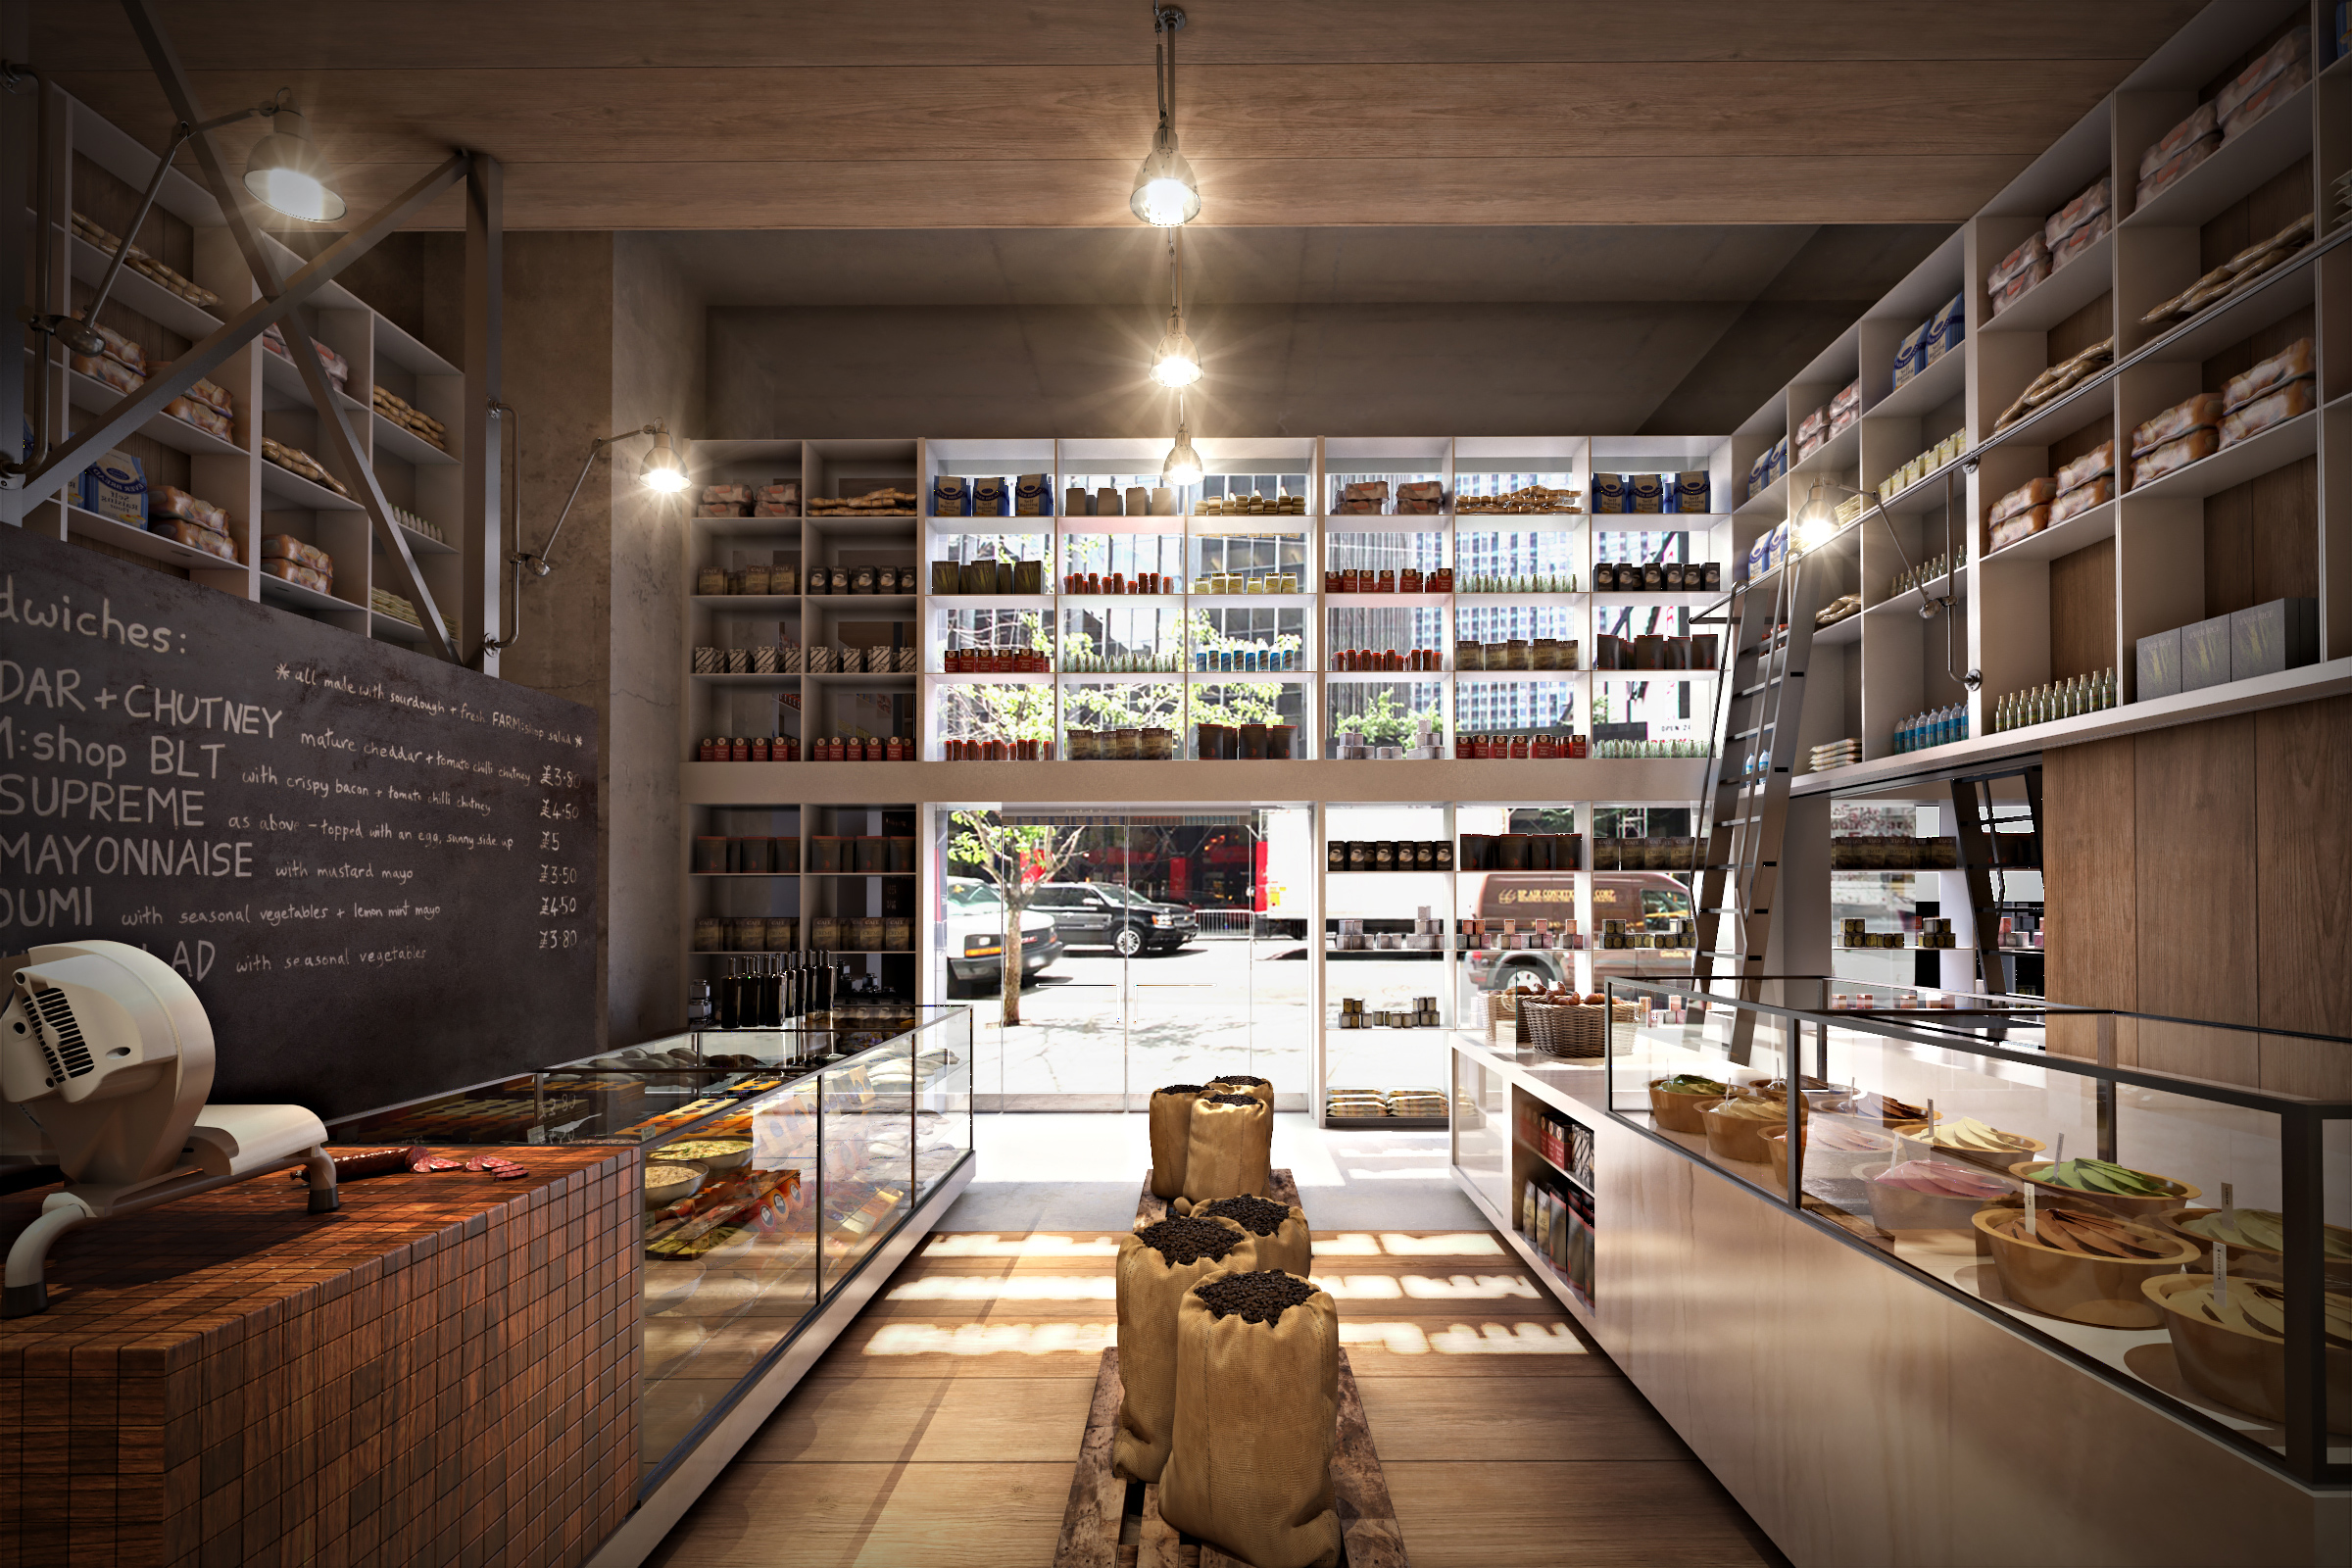 Architecte D'intérieur New York Marché New York Café Yogurt Bar Market 3d